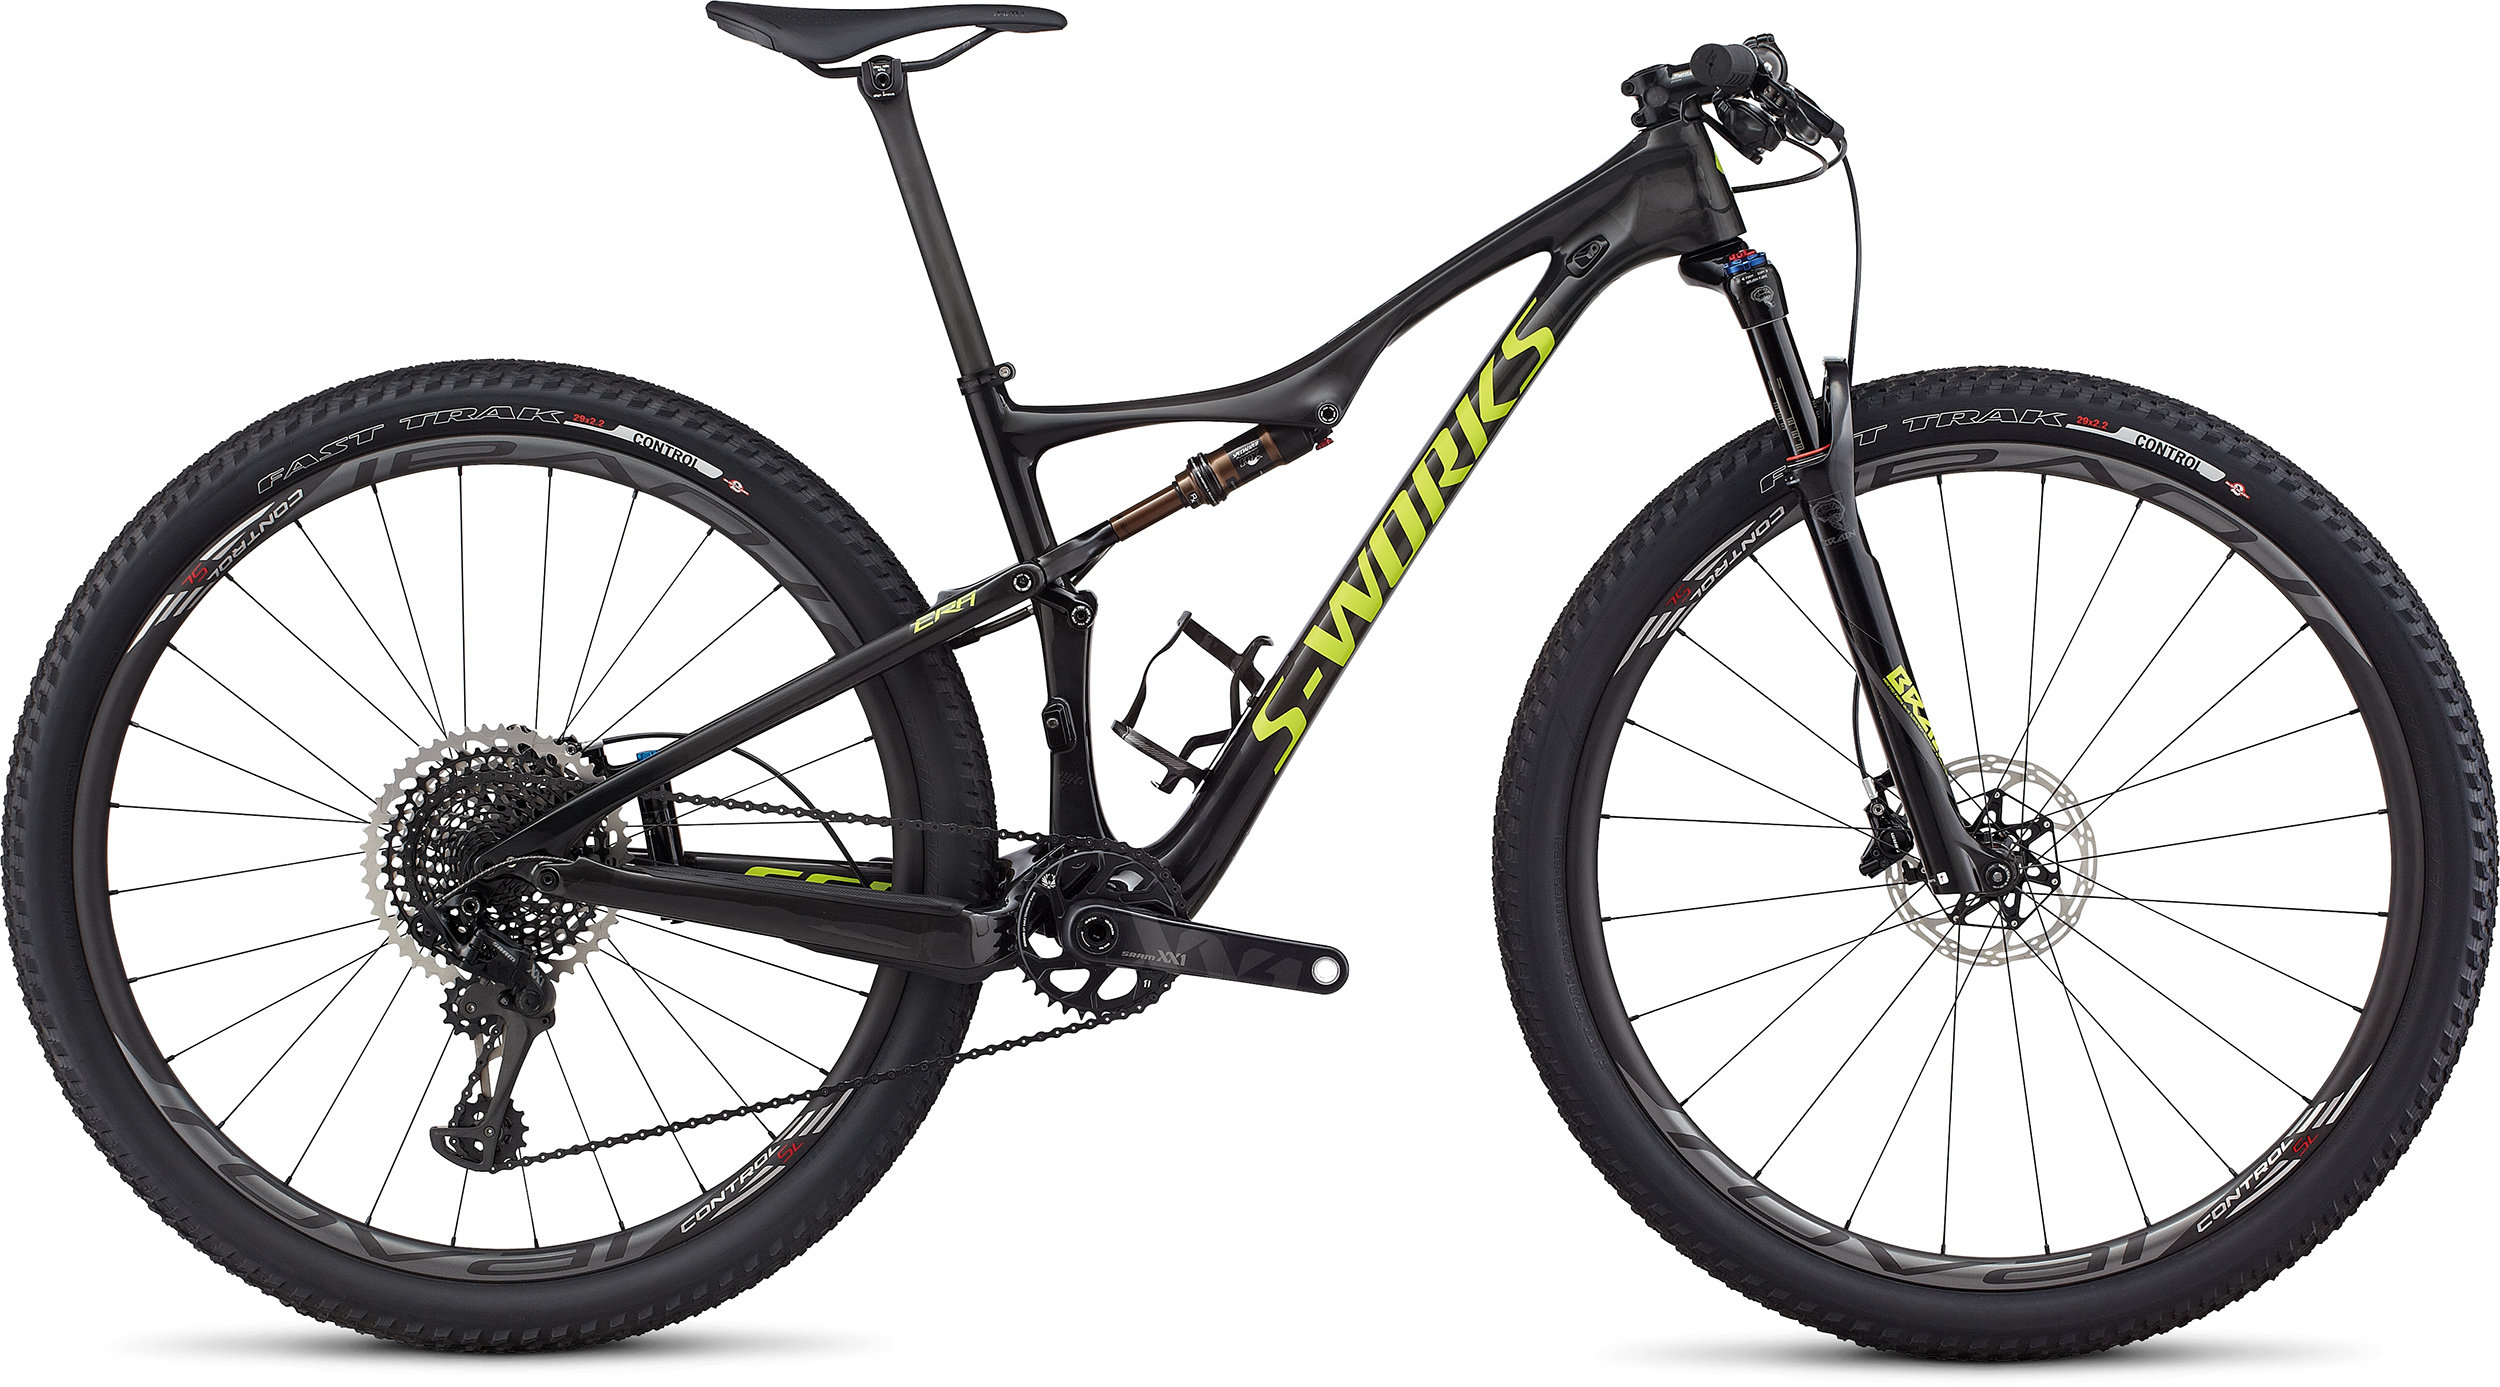 SPECIALIZED SW ERA FSR CARBON WC 29 CARB/HYP/TARBLK L - Alpha Bikes